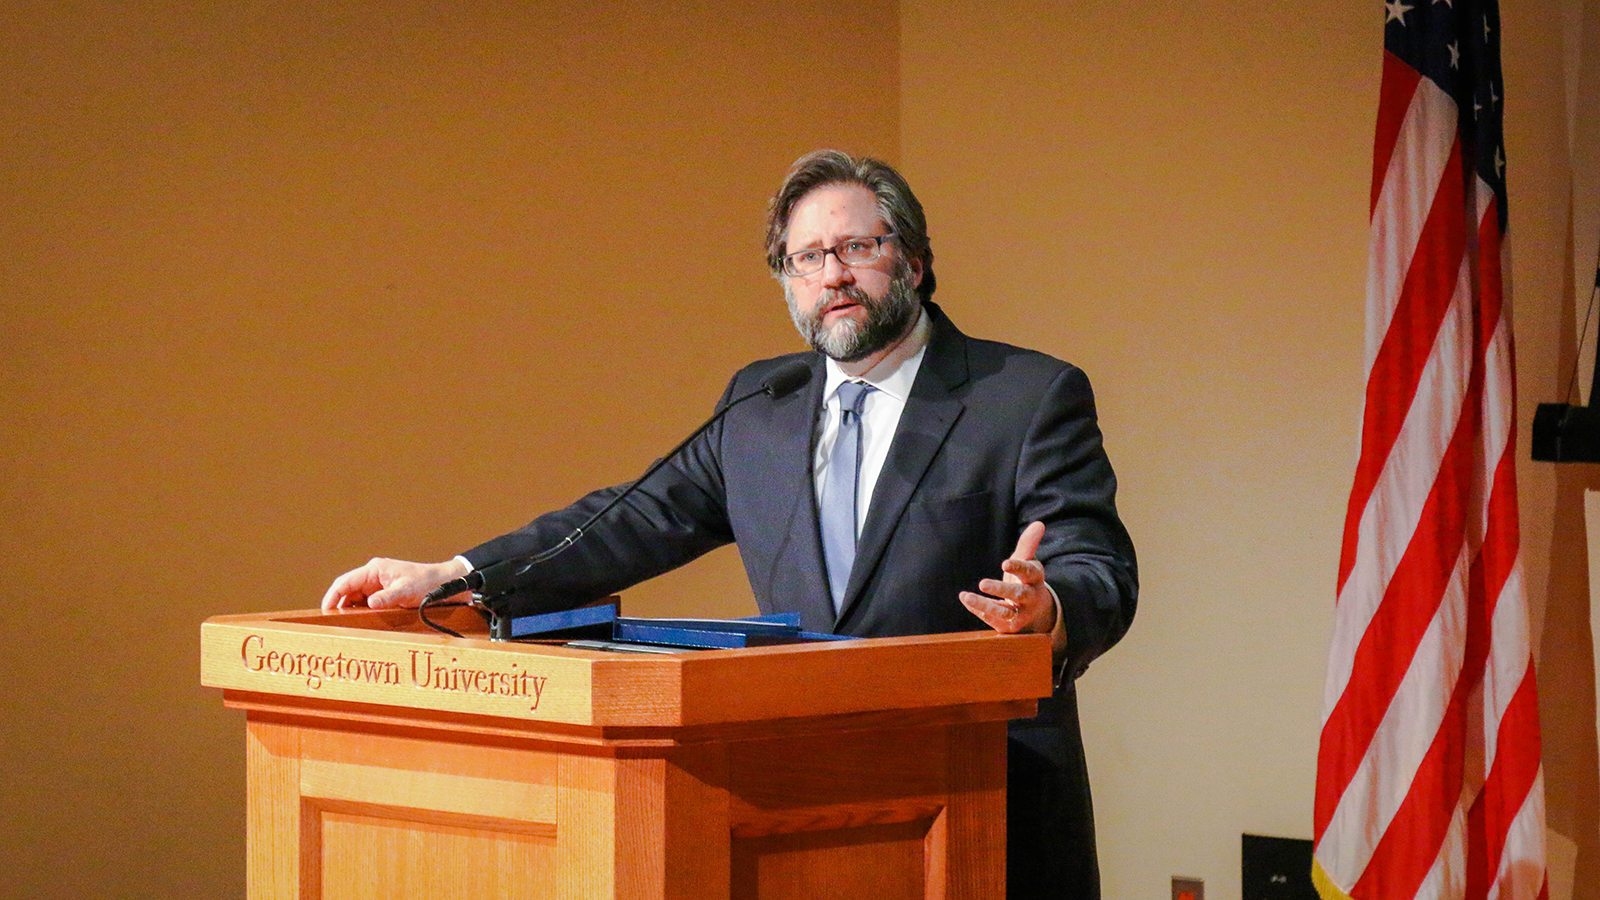 Jon Parrish Peede, chair of the National Endowment for the Humanities, offers opening remarks.